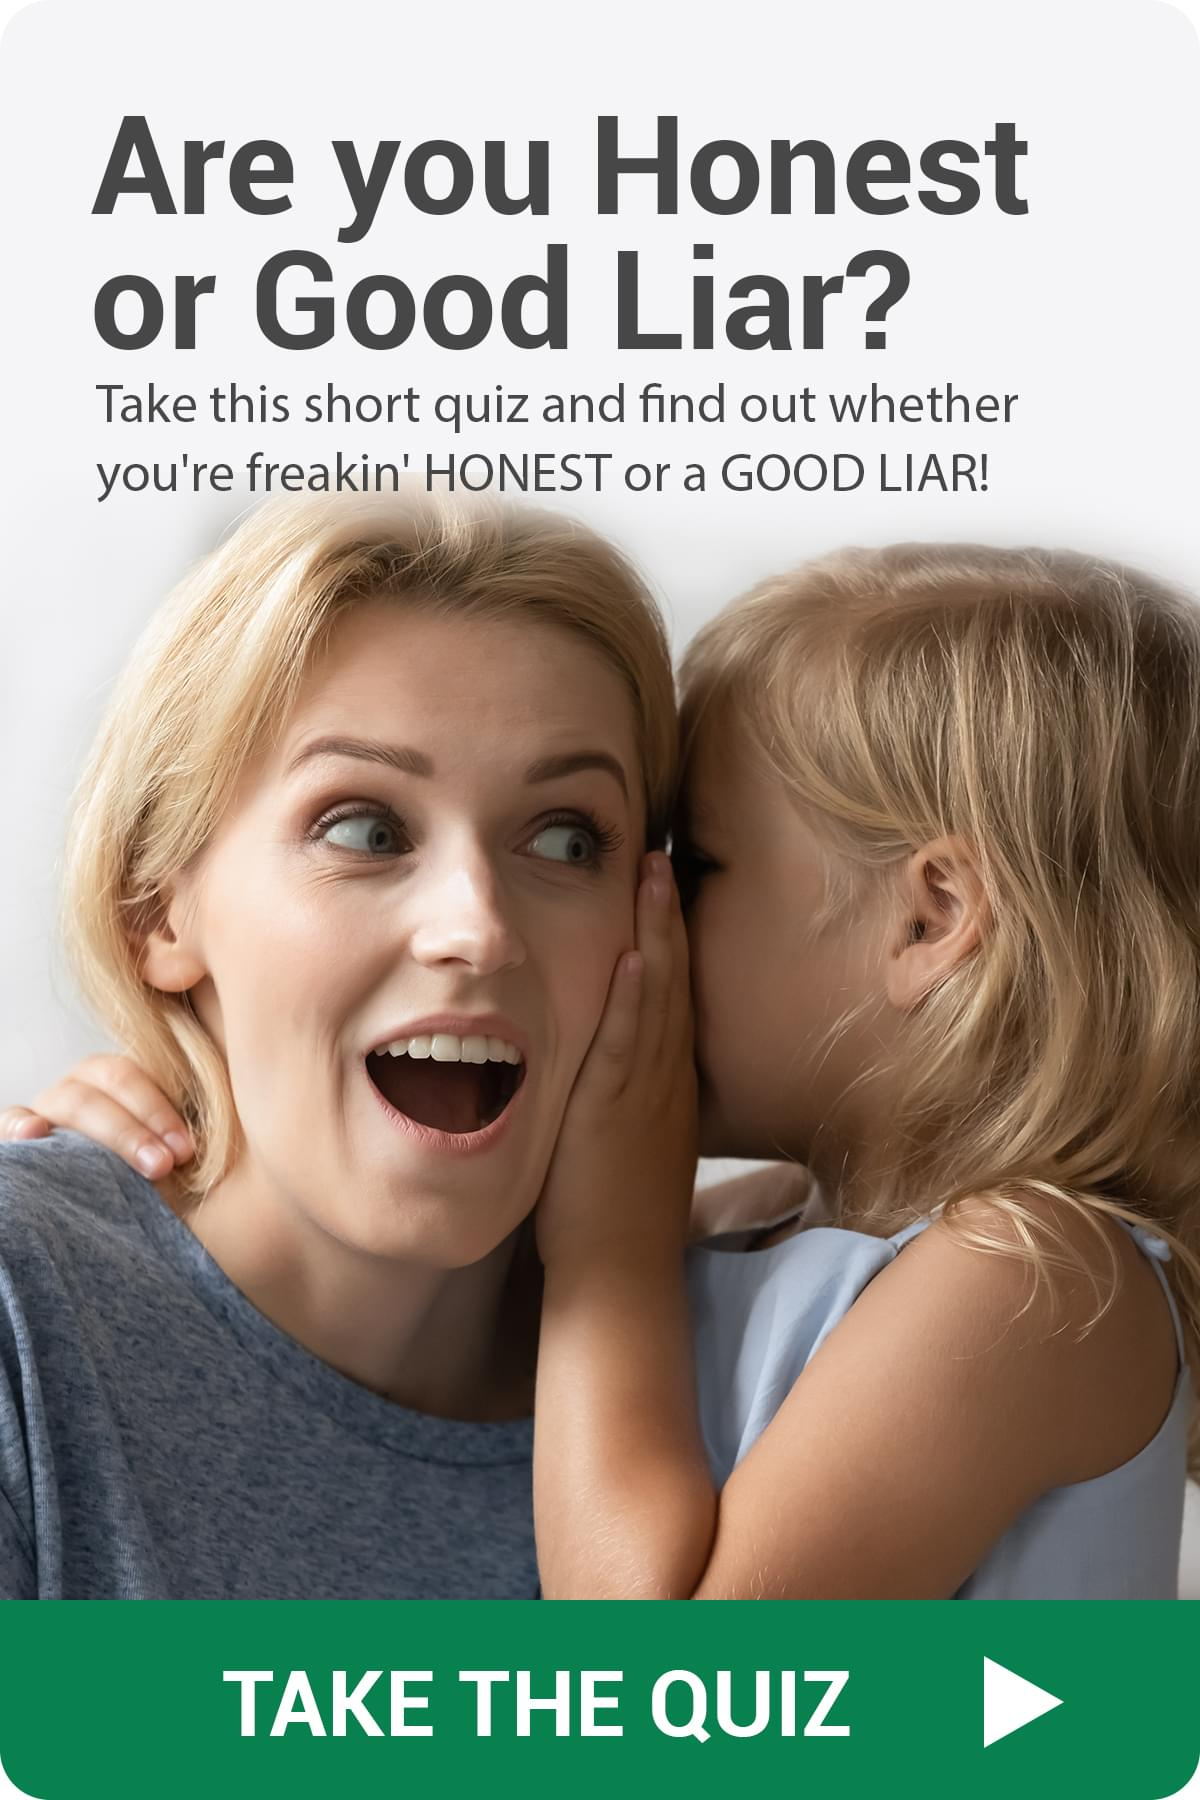 are you honest or good liar? take this quiz and find out if you are freakin' honest or good liar